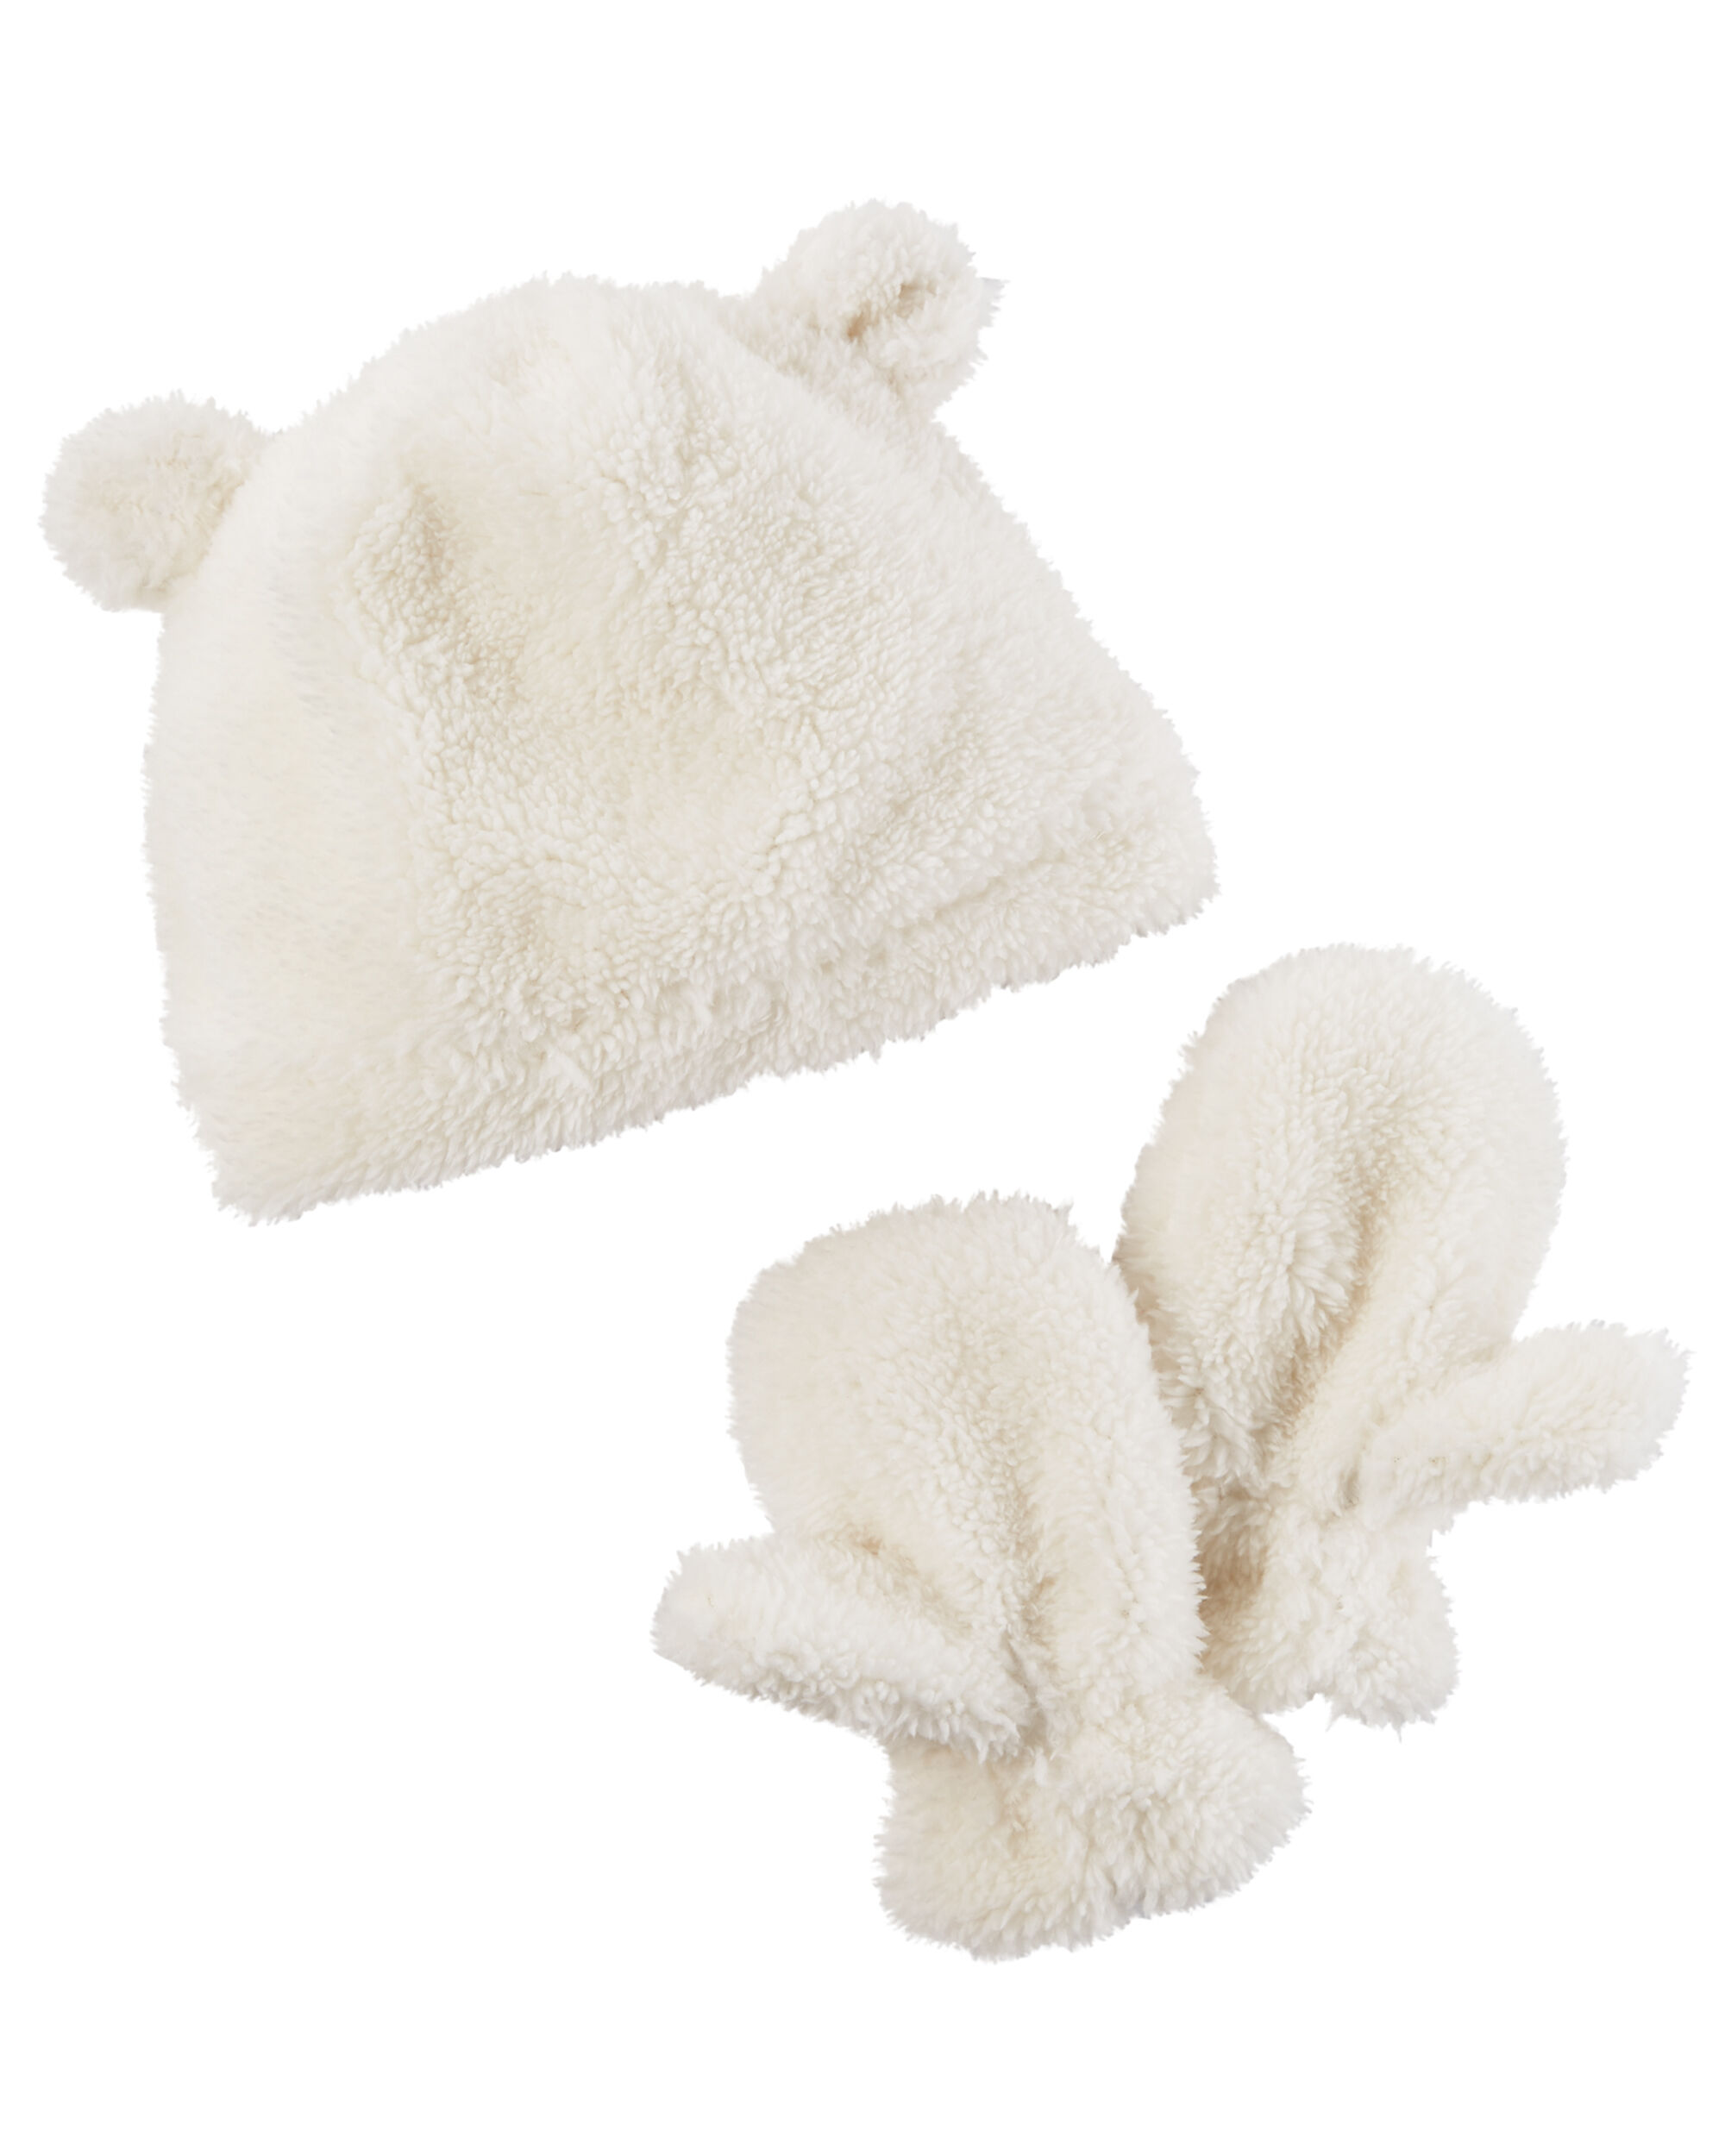 Reliable 5x Baby Girl Mittens All In Mint Condition Socks & Tights Clothing, Shoes & Accessories